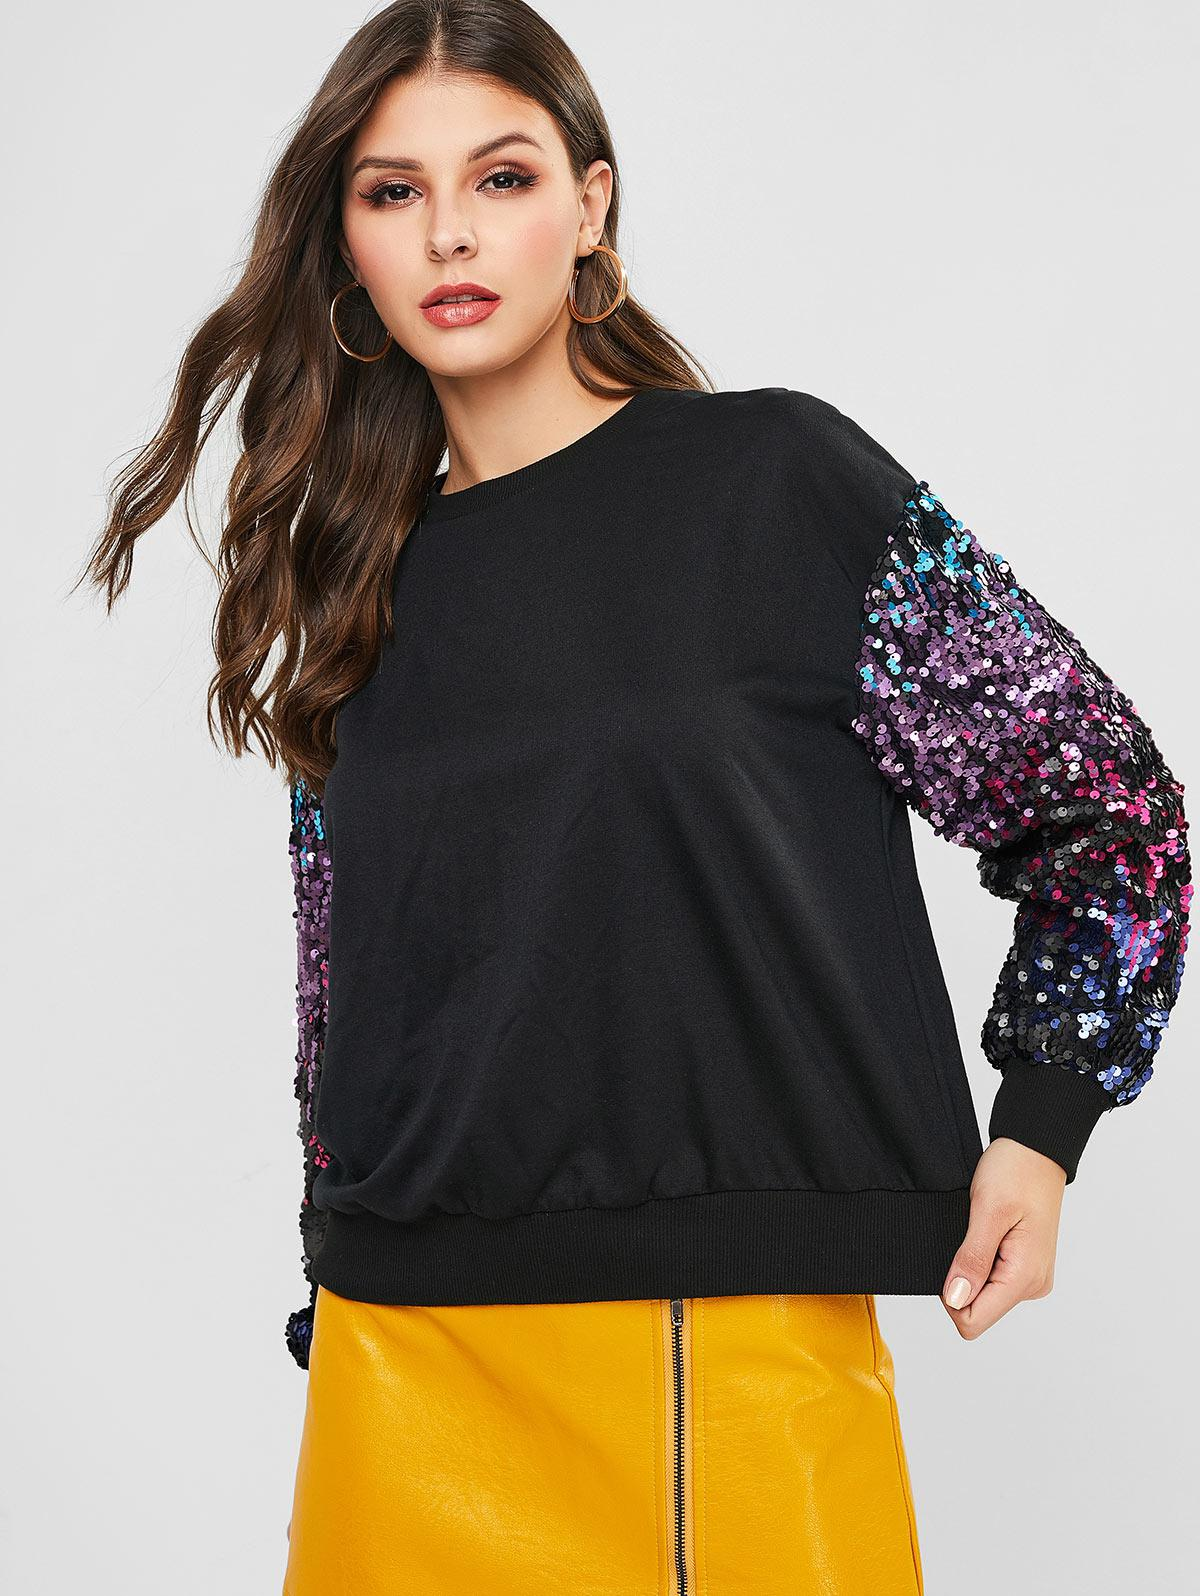 ZAFUL Sequined Sleeves Crew Neck Sweatshirt